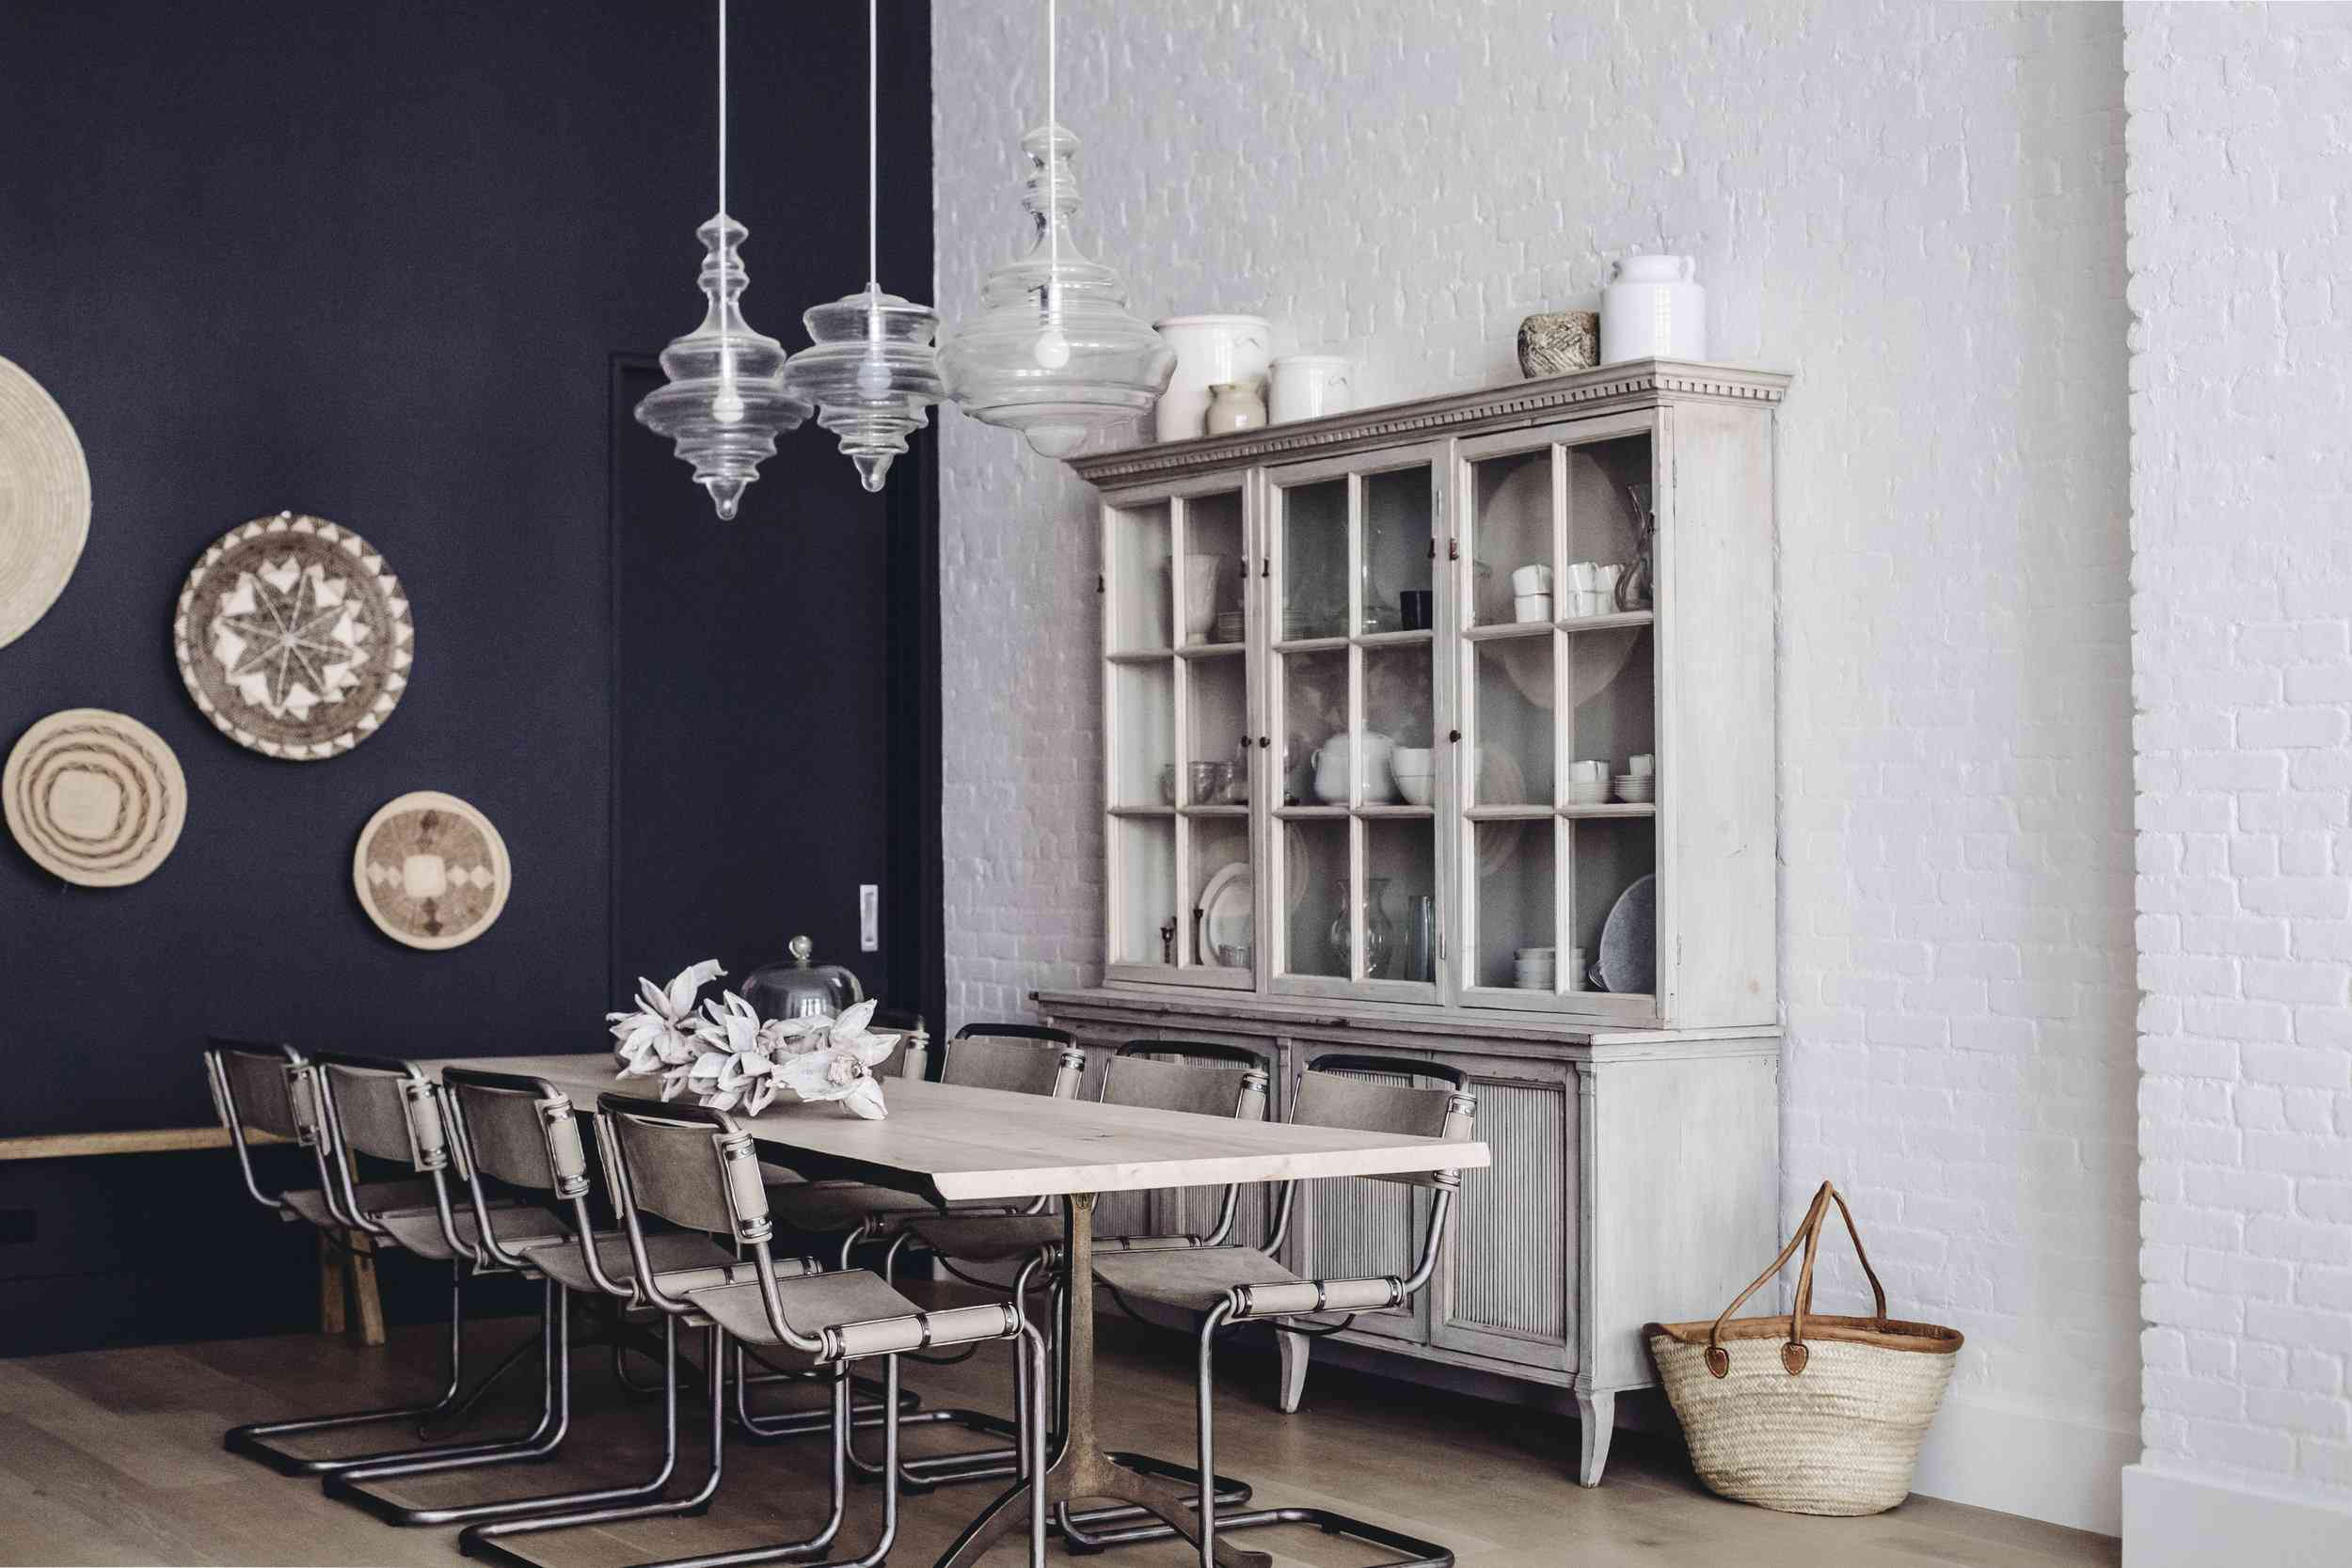 A navy and white dining room lit with three coordinated (but slightly different) pendant lights